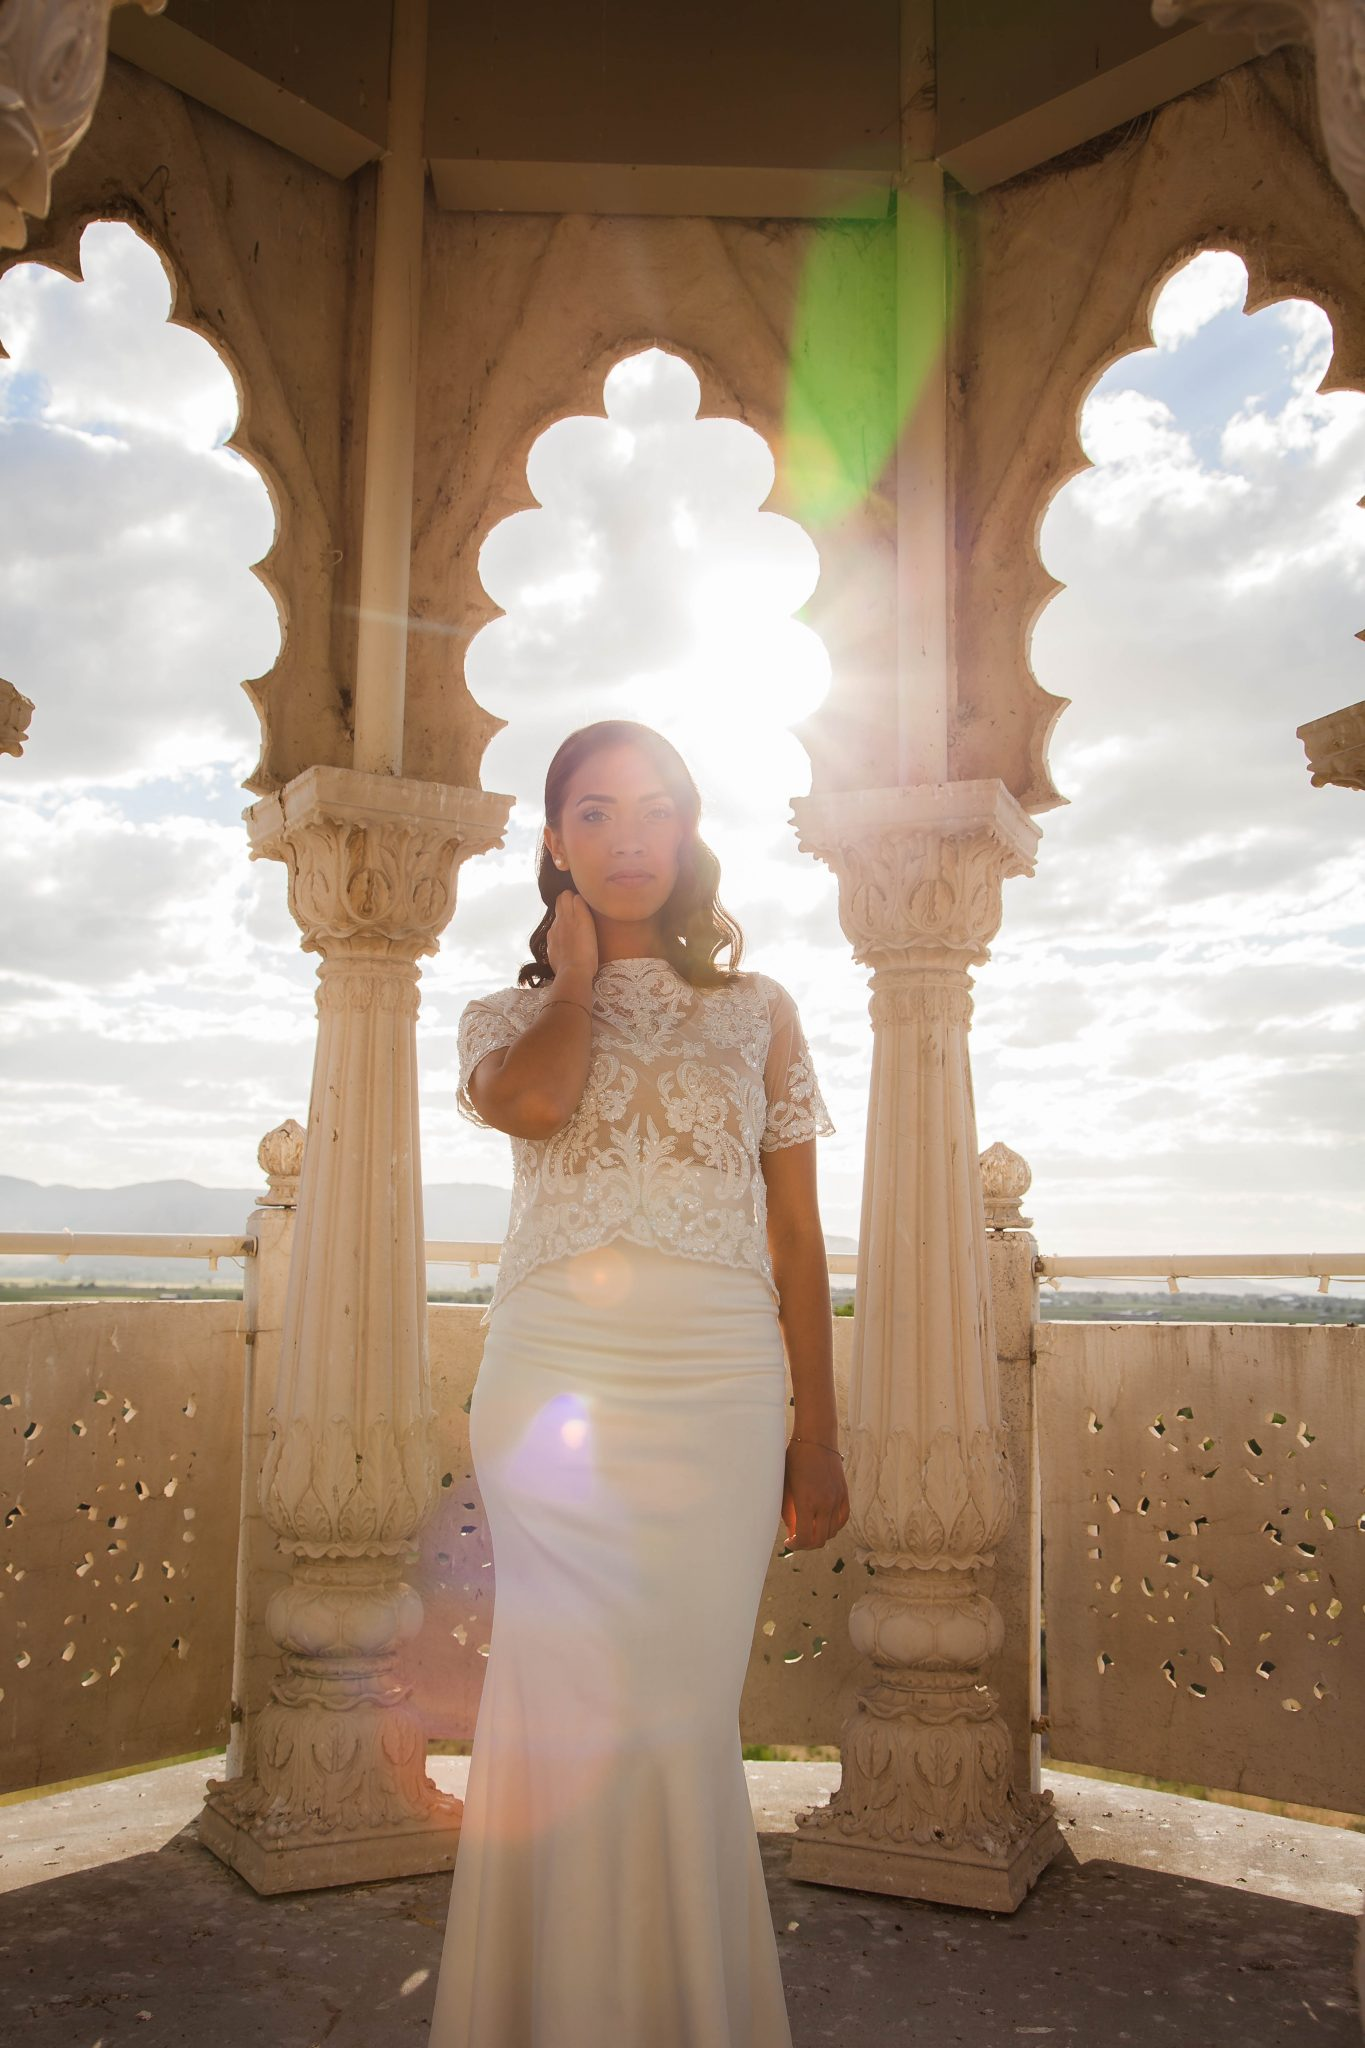 bridal shoot ideas - photo by kramer kreations